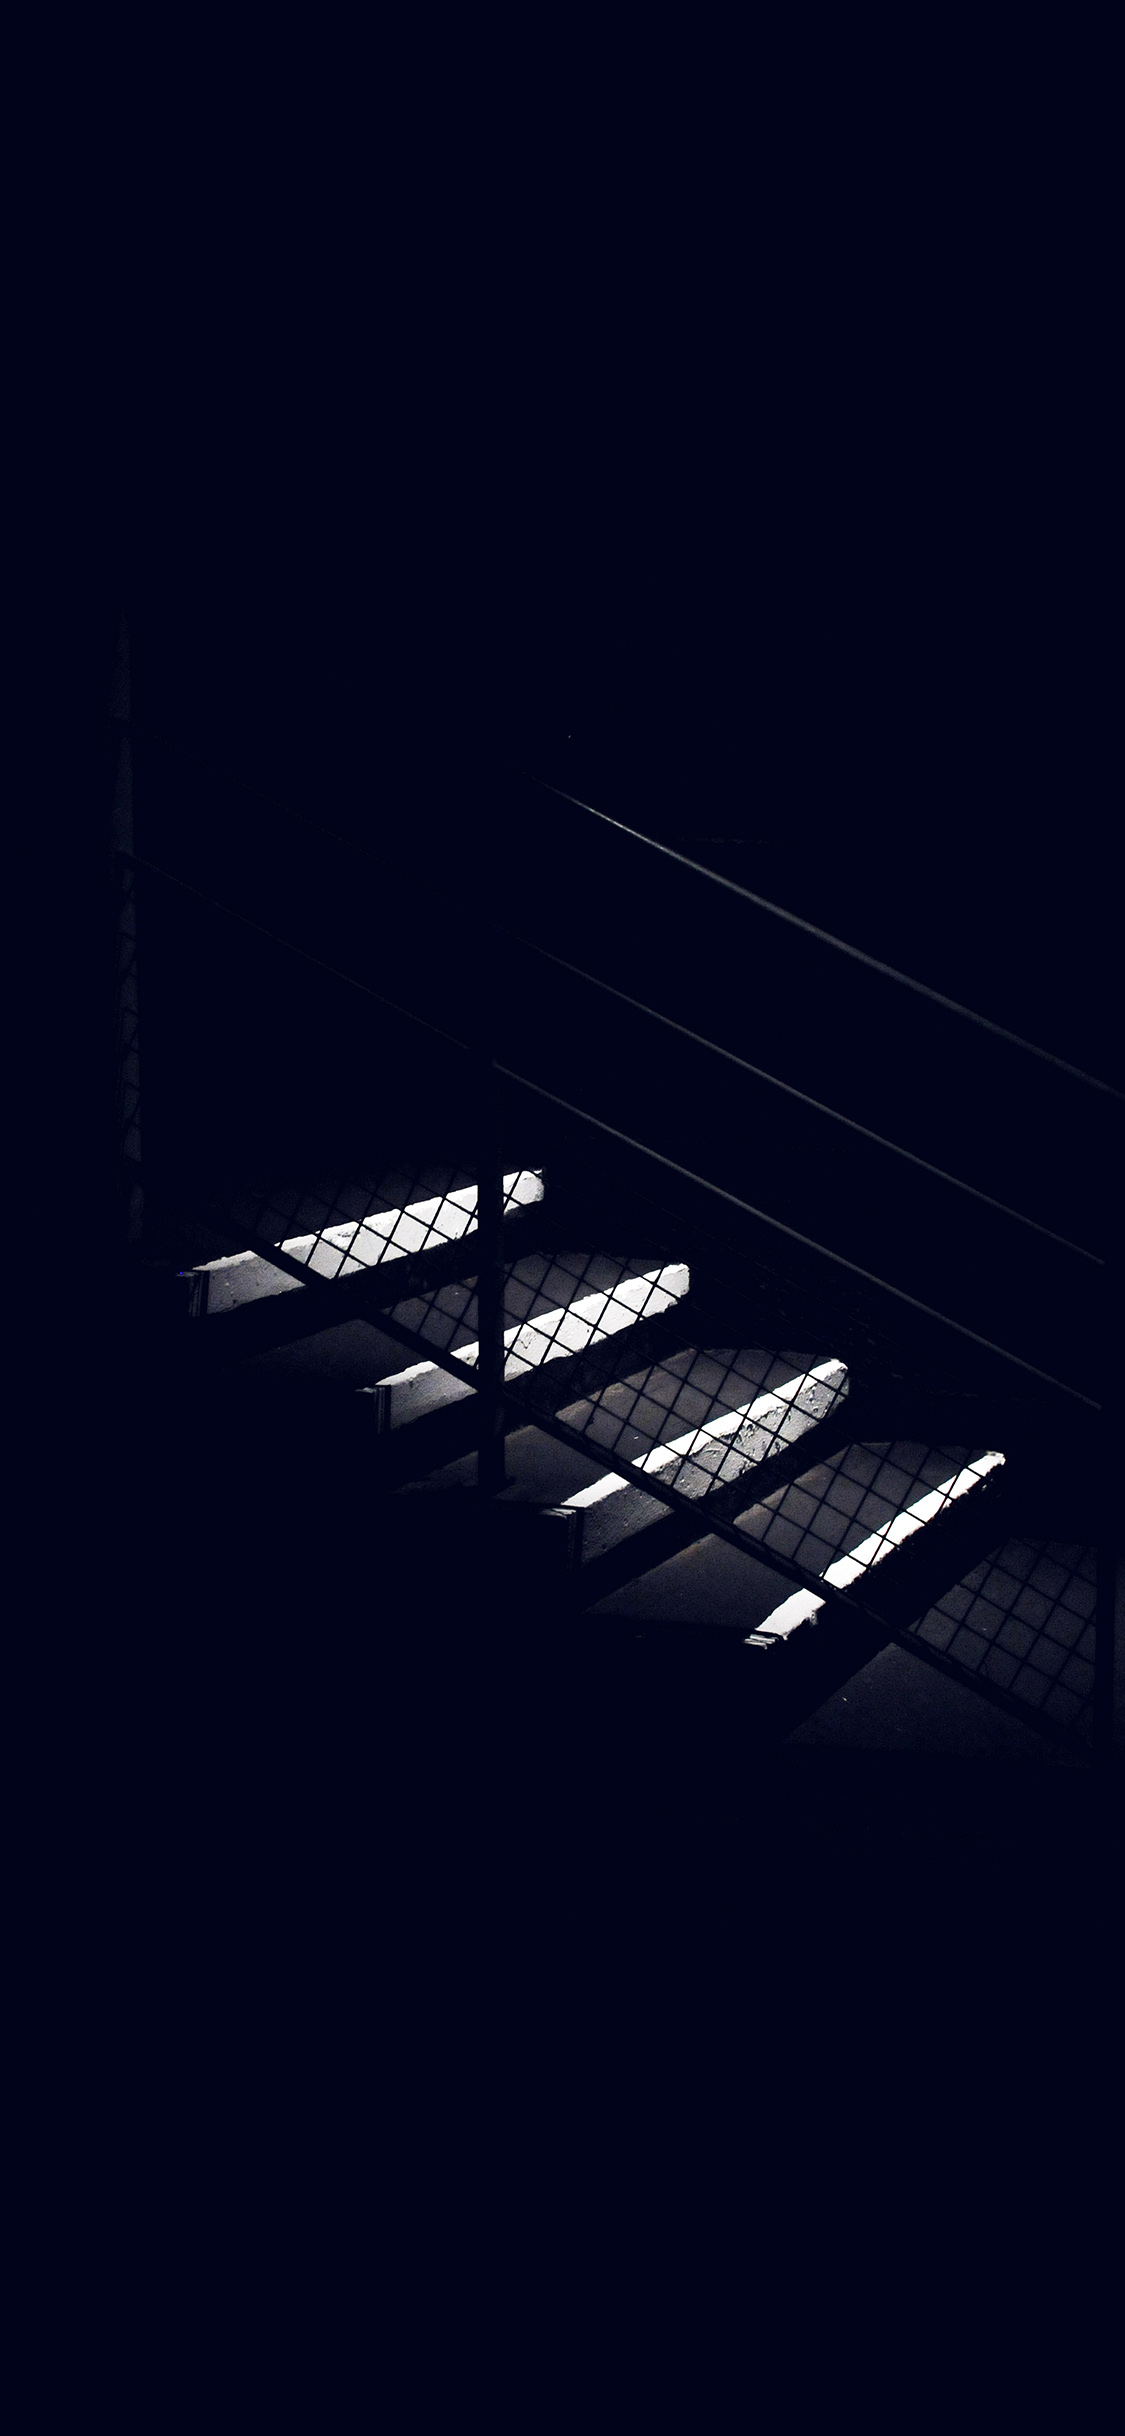 iPhonexpapers.com-Apple-iPhone-wallpaper-nf69-dark-stairs-minimal-simple-city-bw-blue